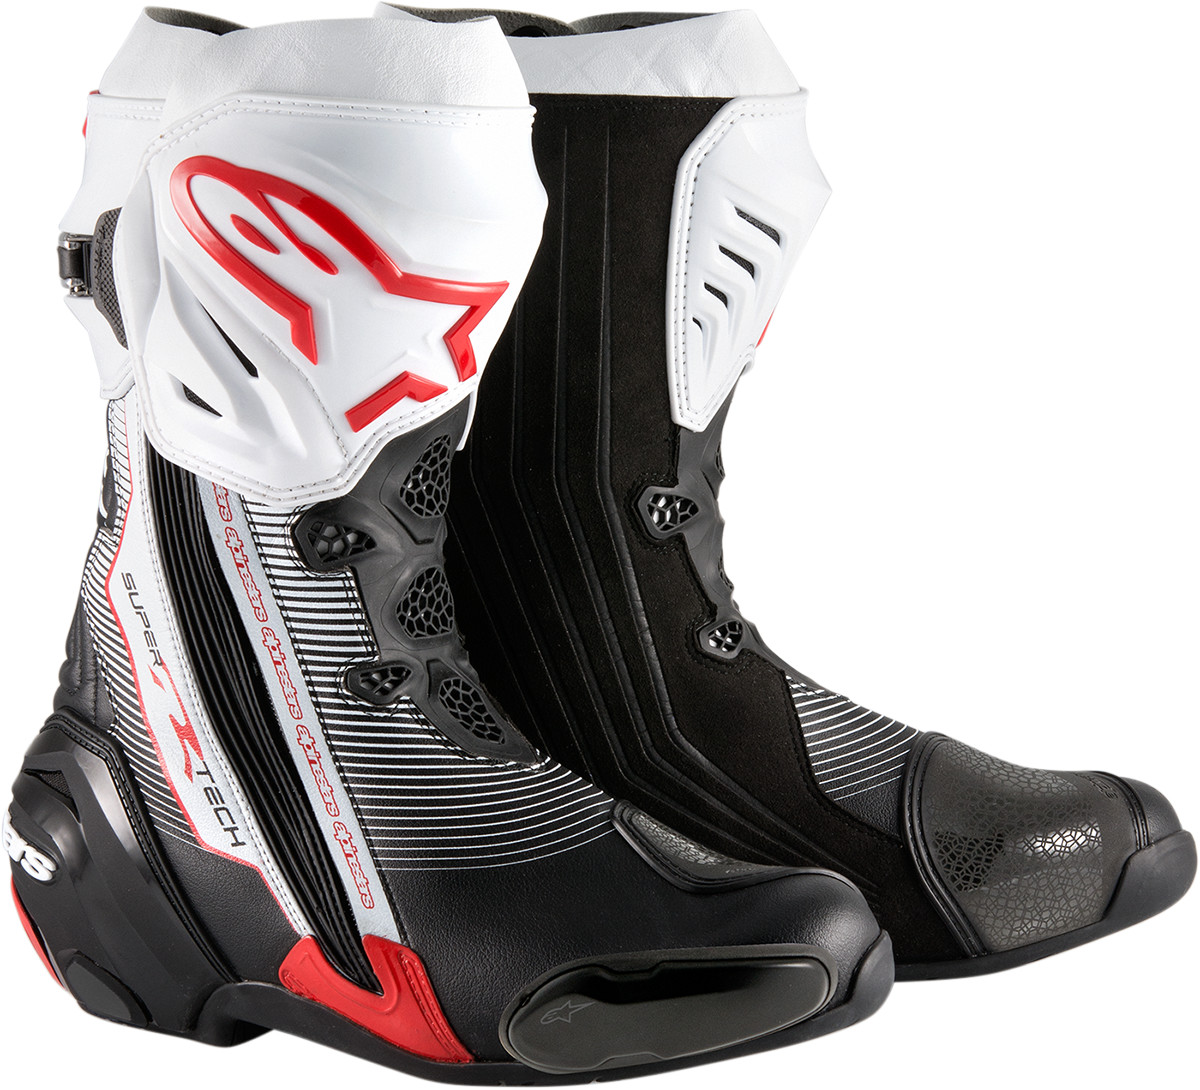 Alpinestars-Supertech-R-Street-Riding-Motorcycle-Boots-All-Sizes-All-Colors